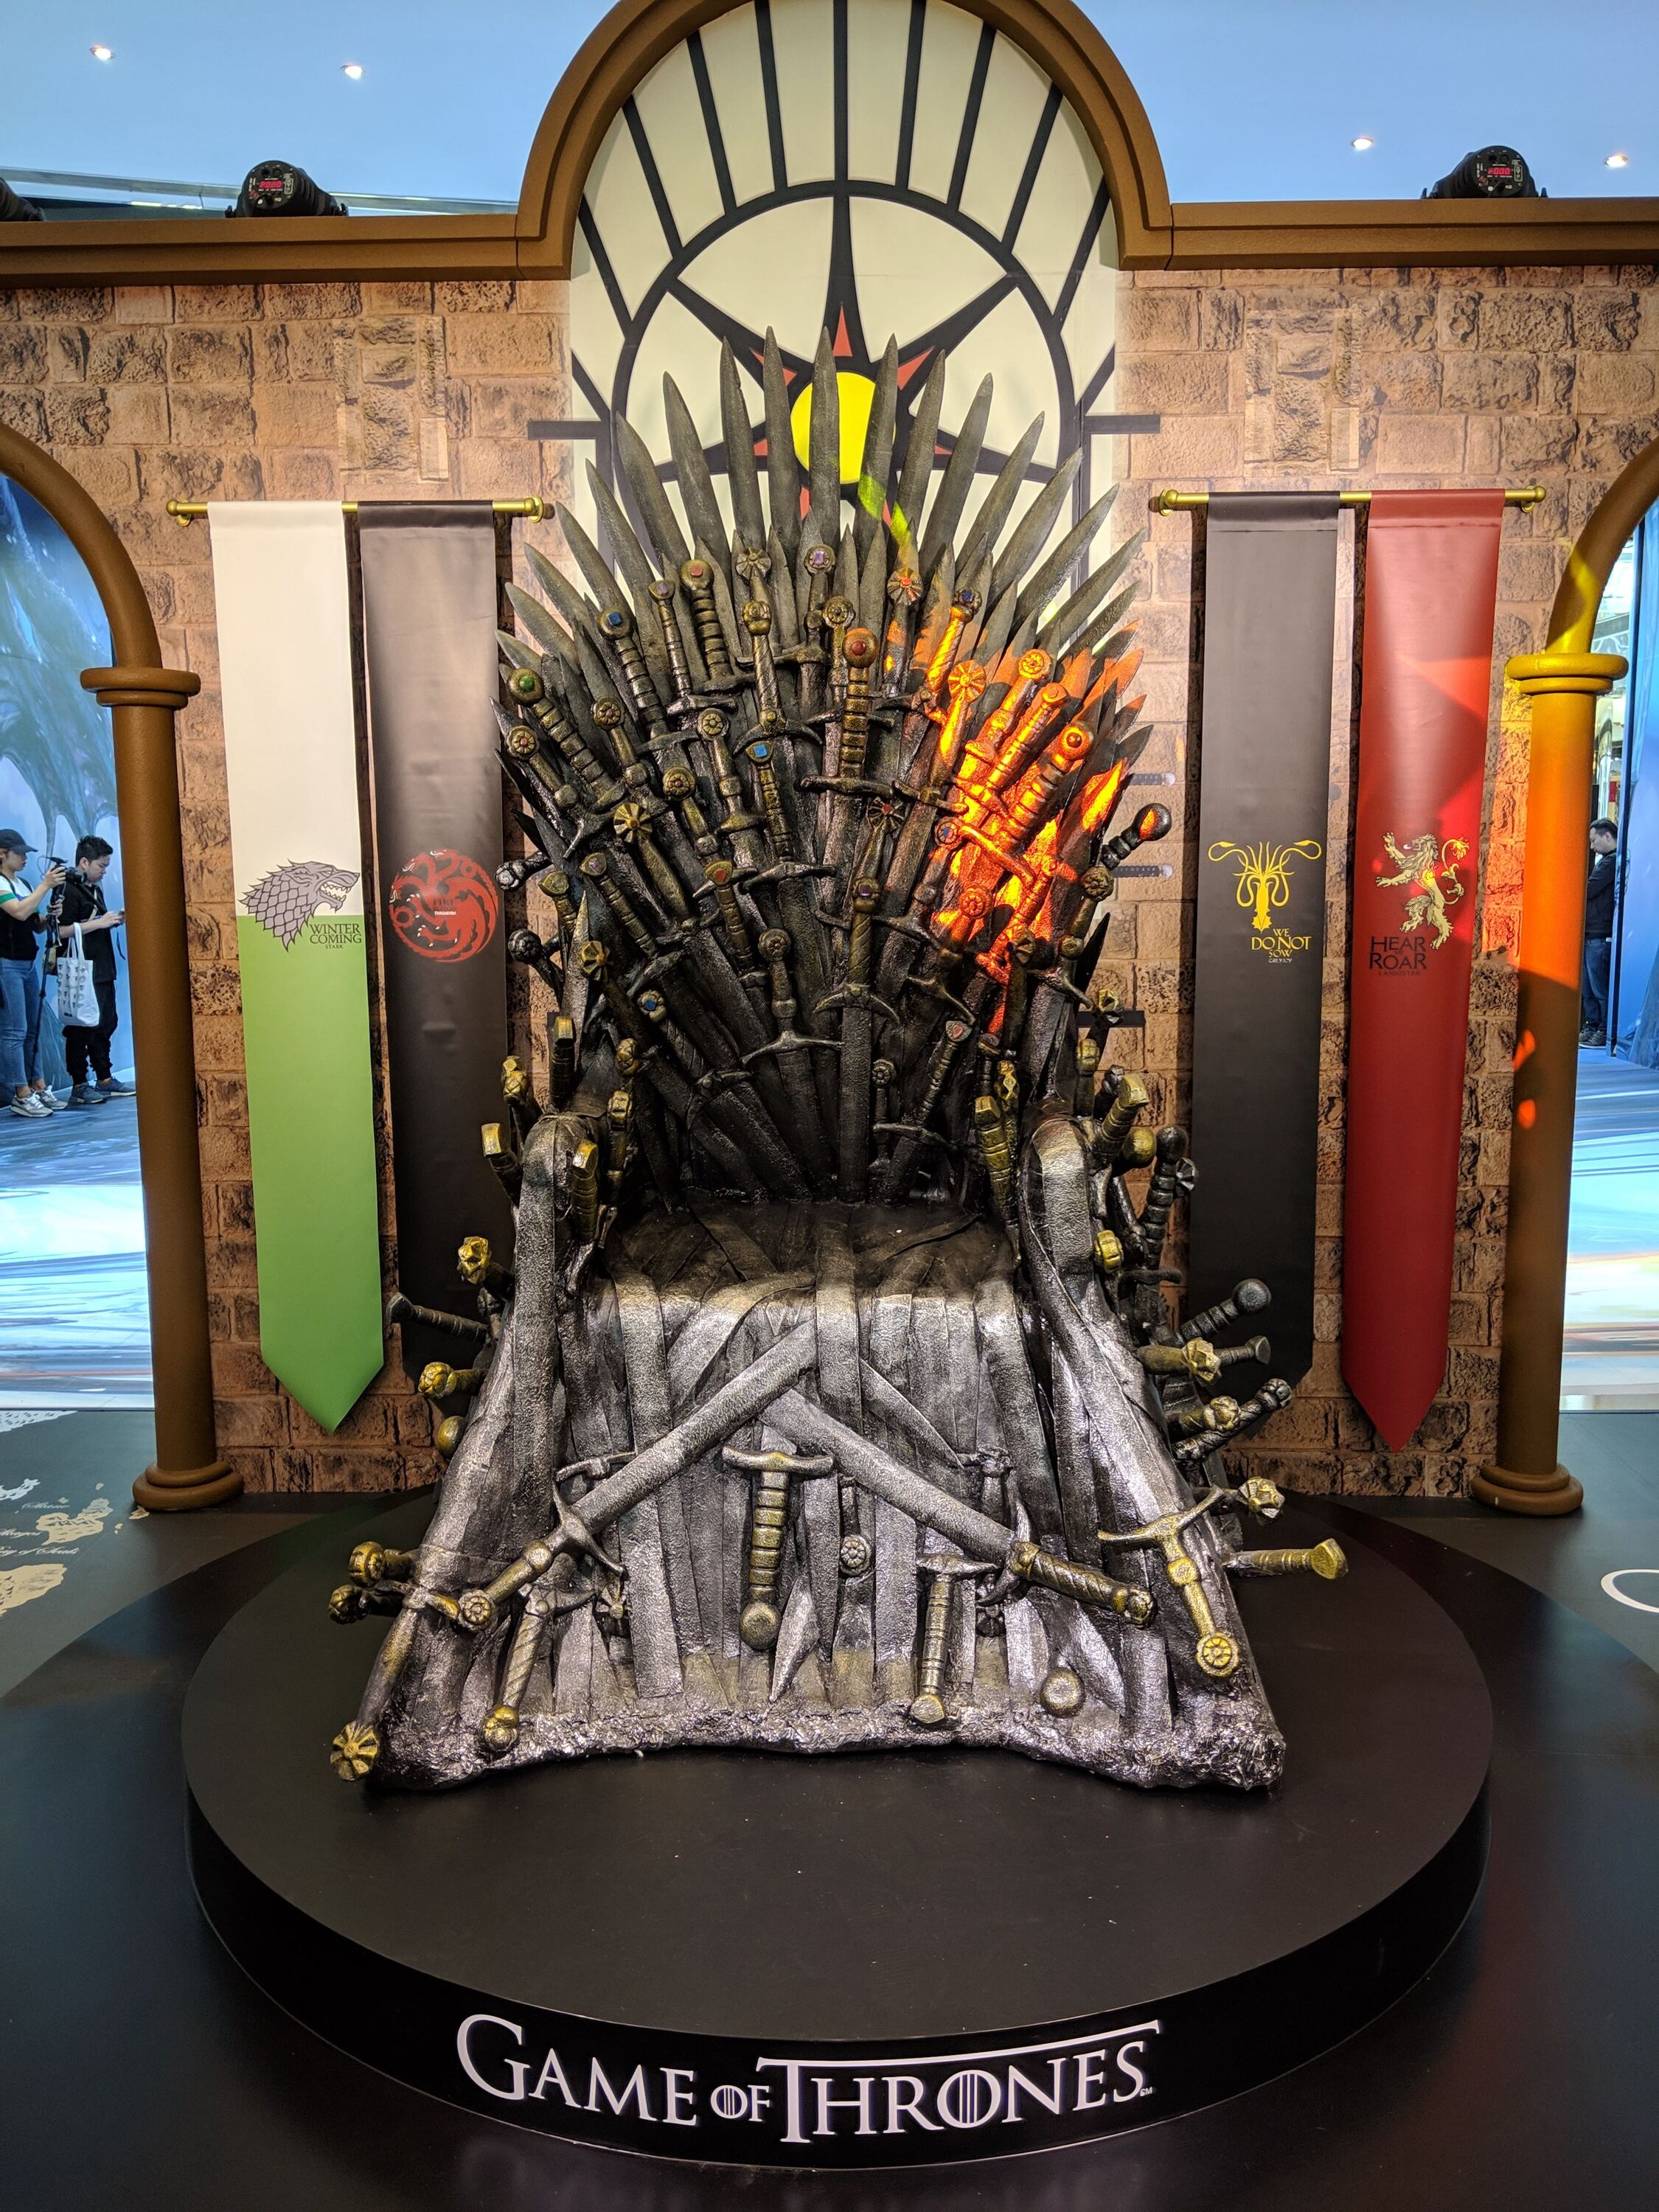 Don't miss Hong Kong's first Game of Thrones exhibition ahead of the